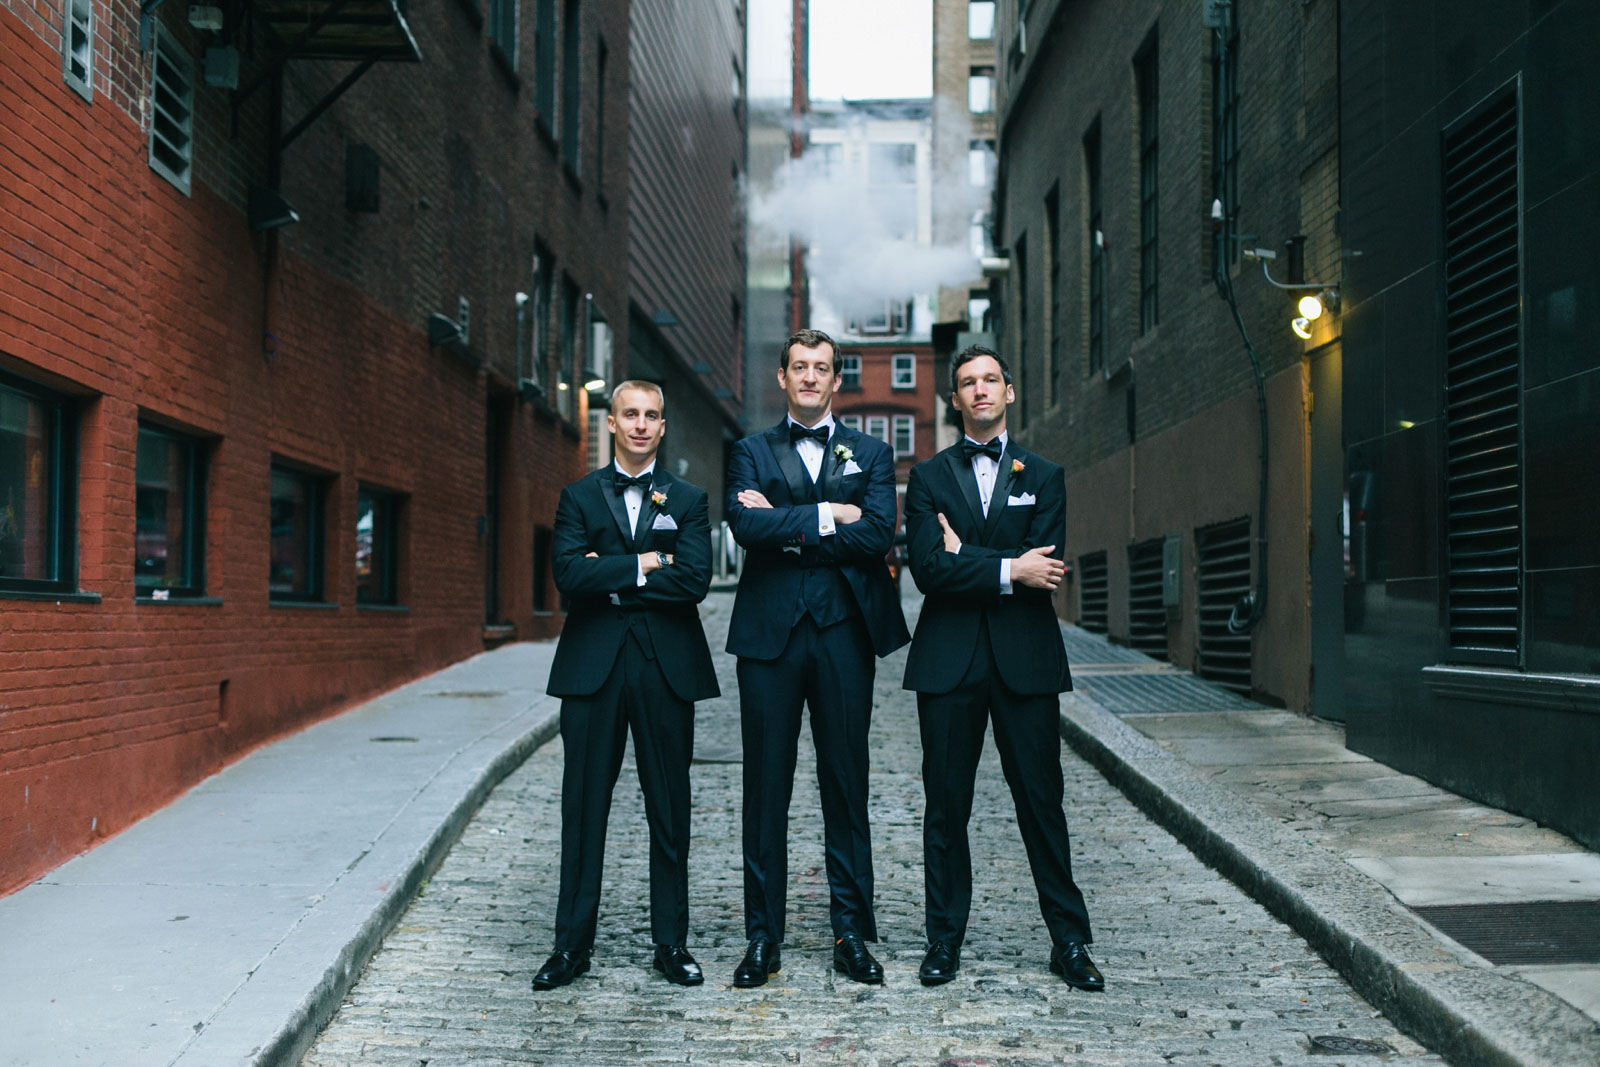 Tough-guy groomsmen portrait standing arm-crossed in alleyway with smoke in background